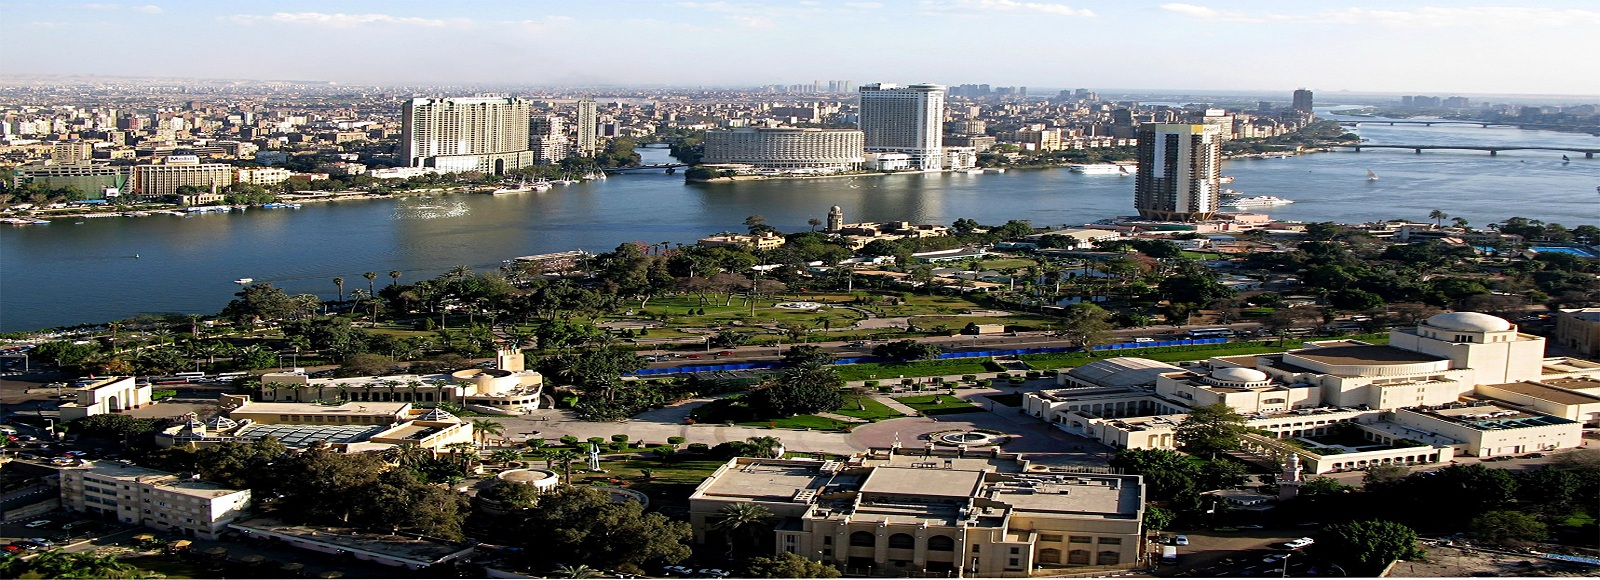 Hotels  Cairo Hotel offers in Cairo